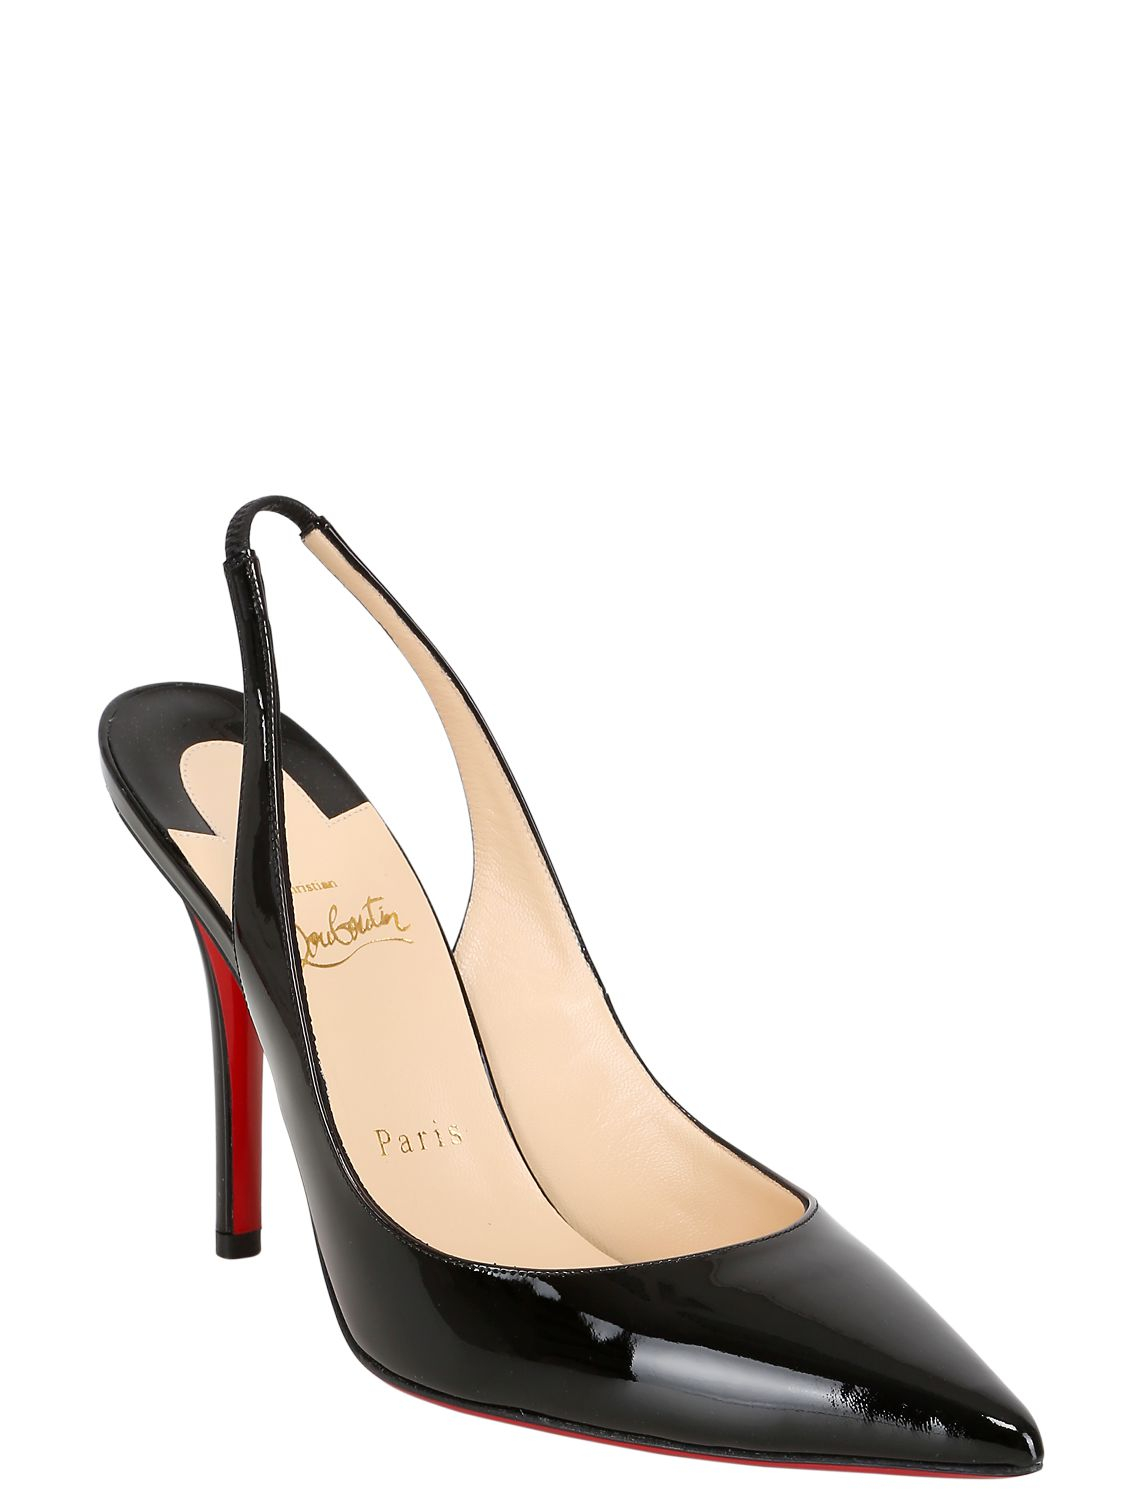 low price christian louboutin shoes - christian-louboutin-black-100mm-apostrophy-patent-slingback-pumps-product-1-19234529-1-022752748-normal.jpeg